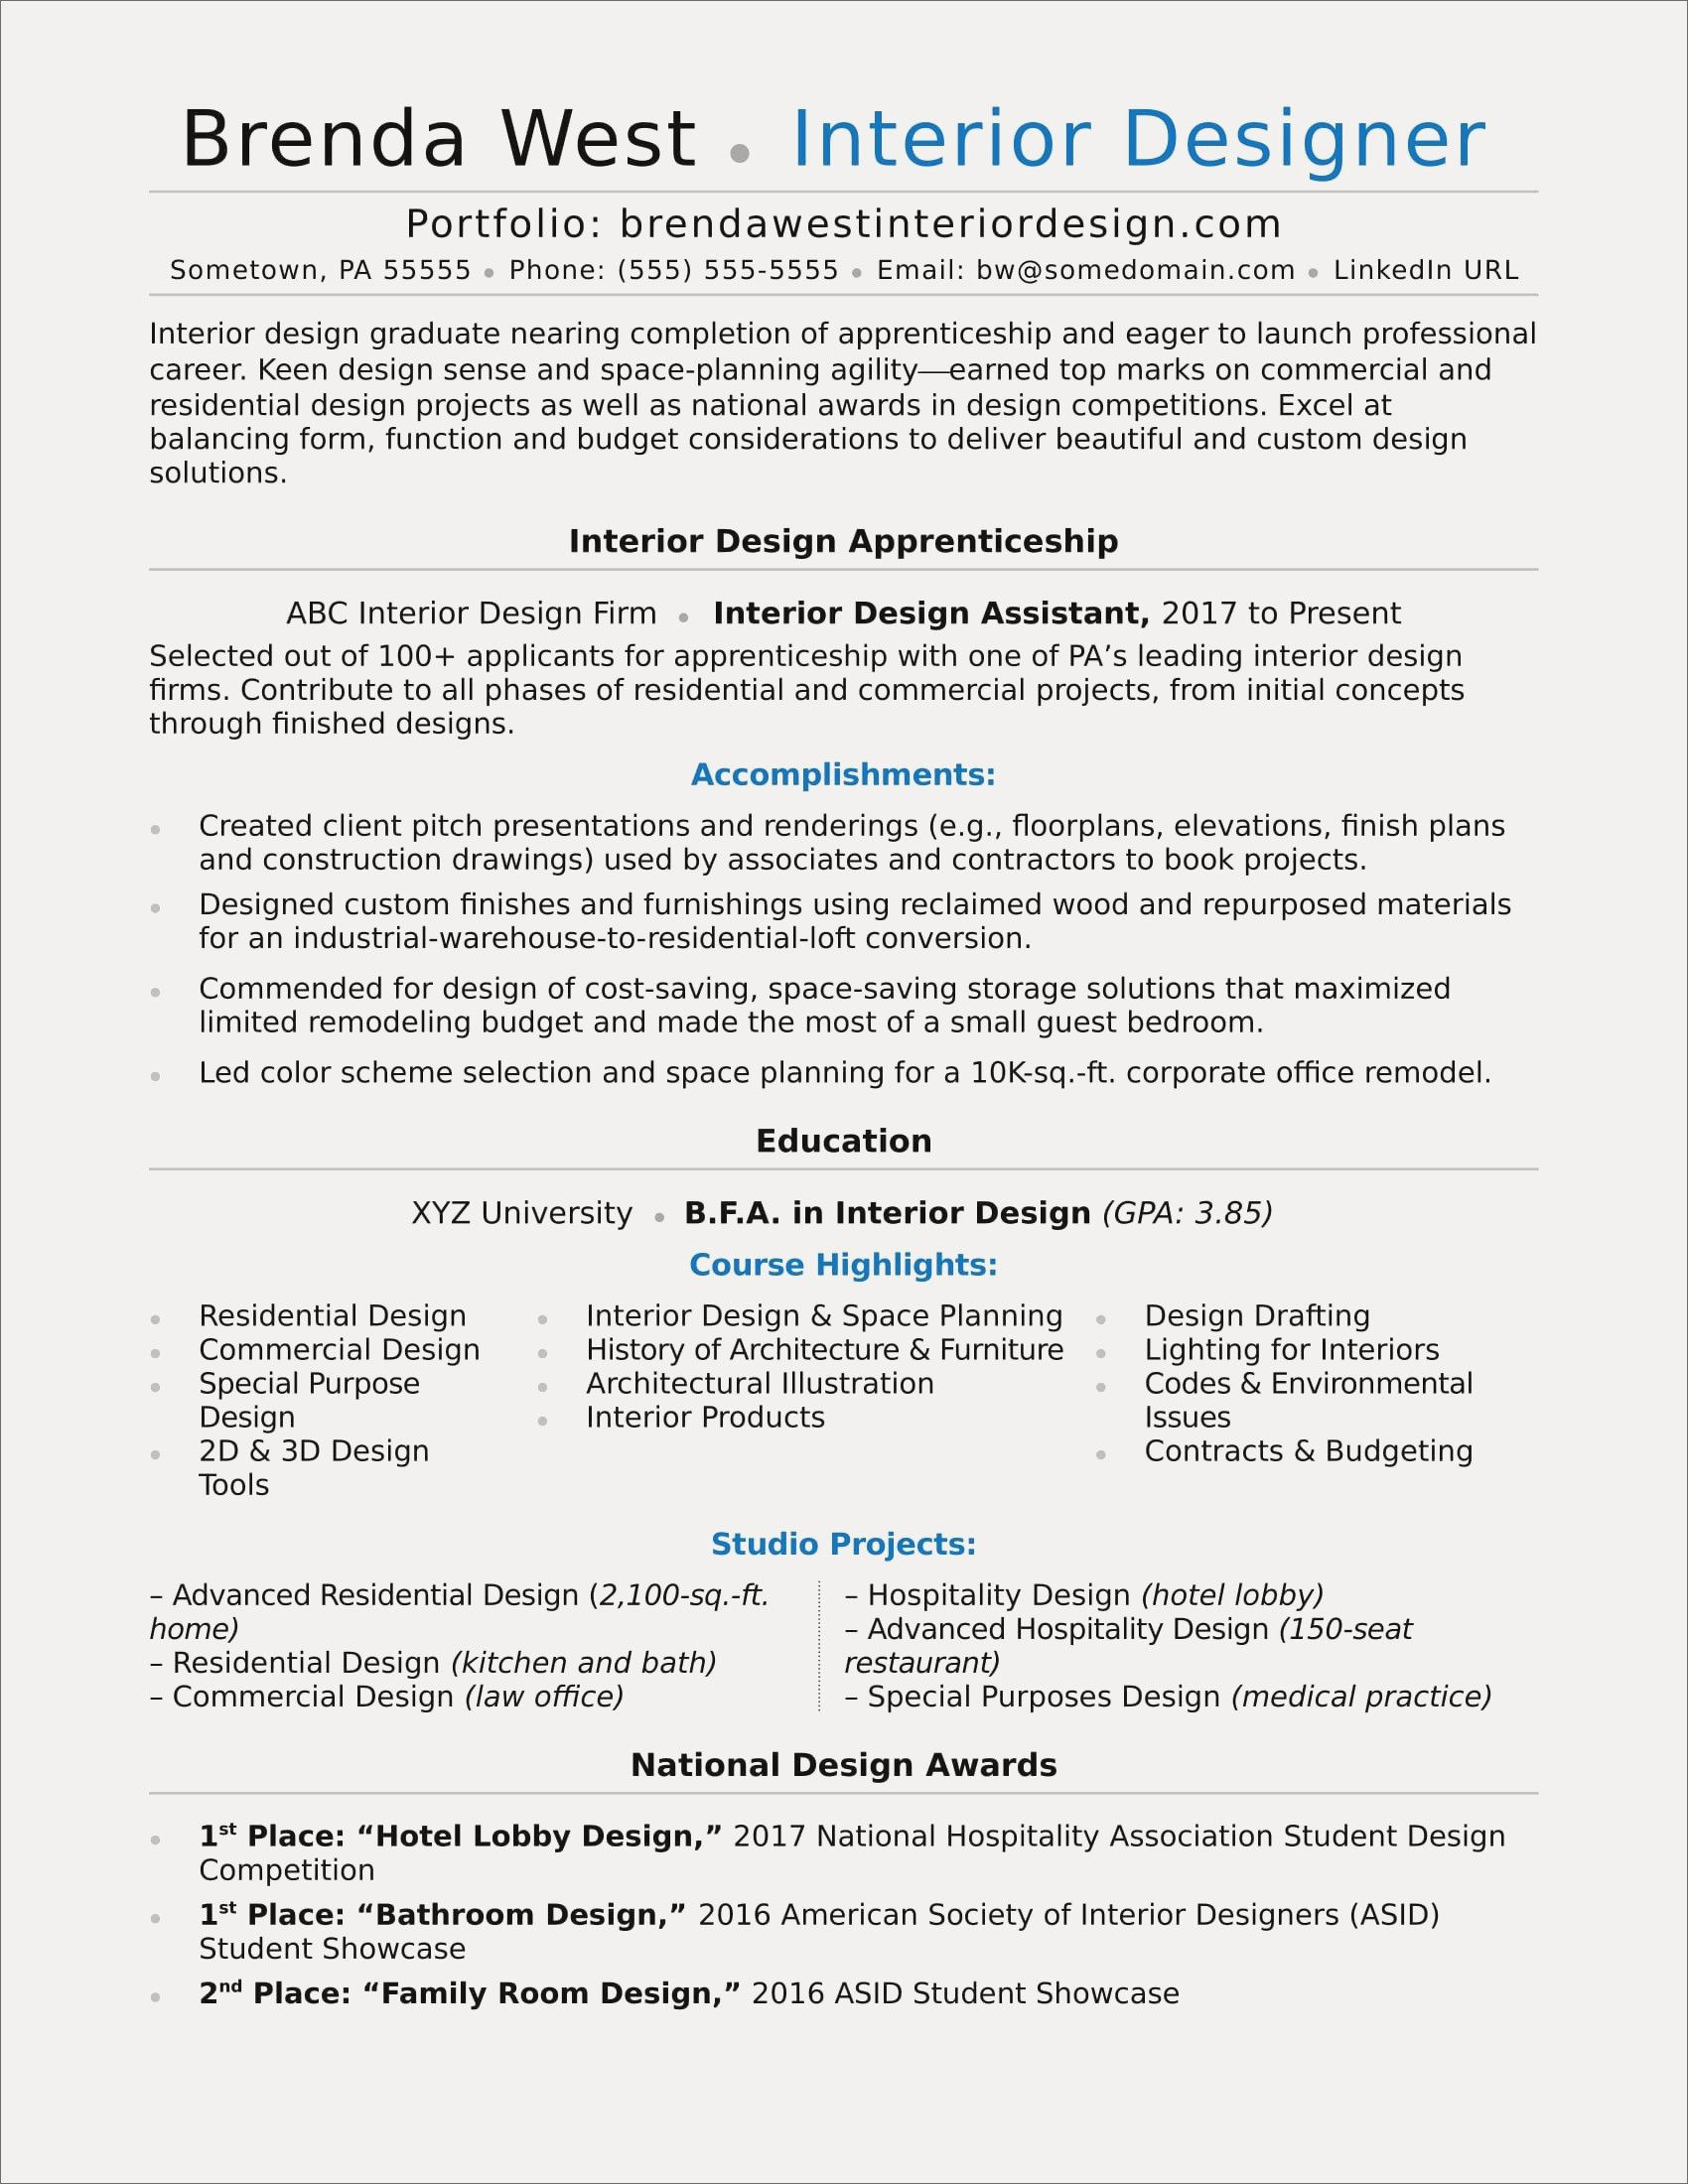 73 Beautiful Images Of Resume Trends 2016 Examples Check More At Https Www Ourpetscrawley Com 73 Beautiful Images Of Resume Trends 2016 Examples Teknologi